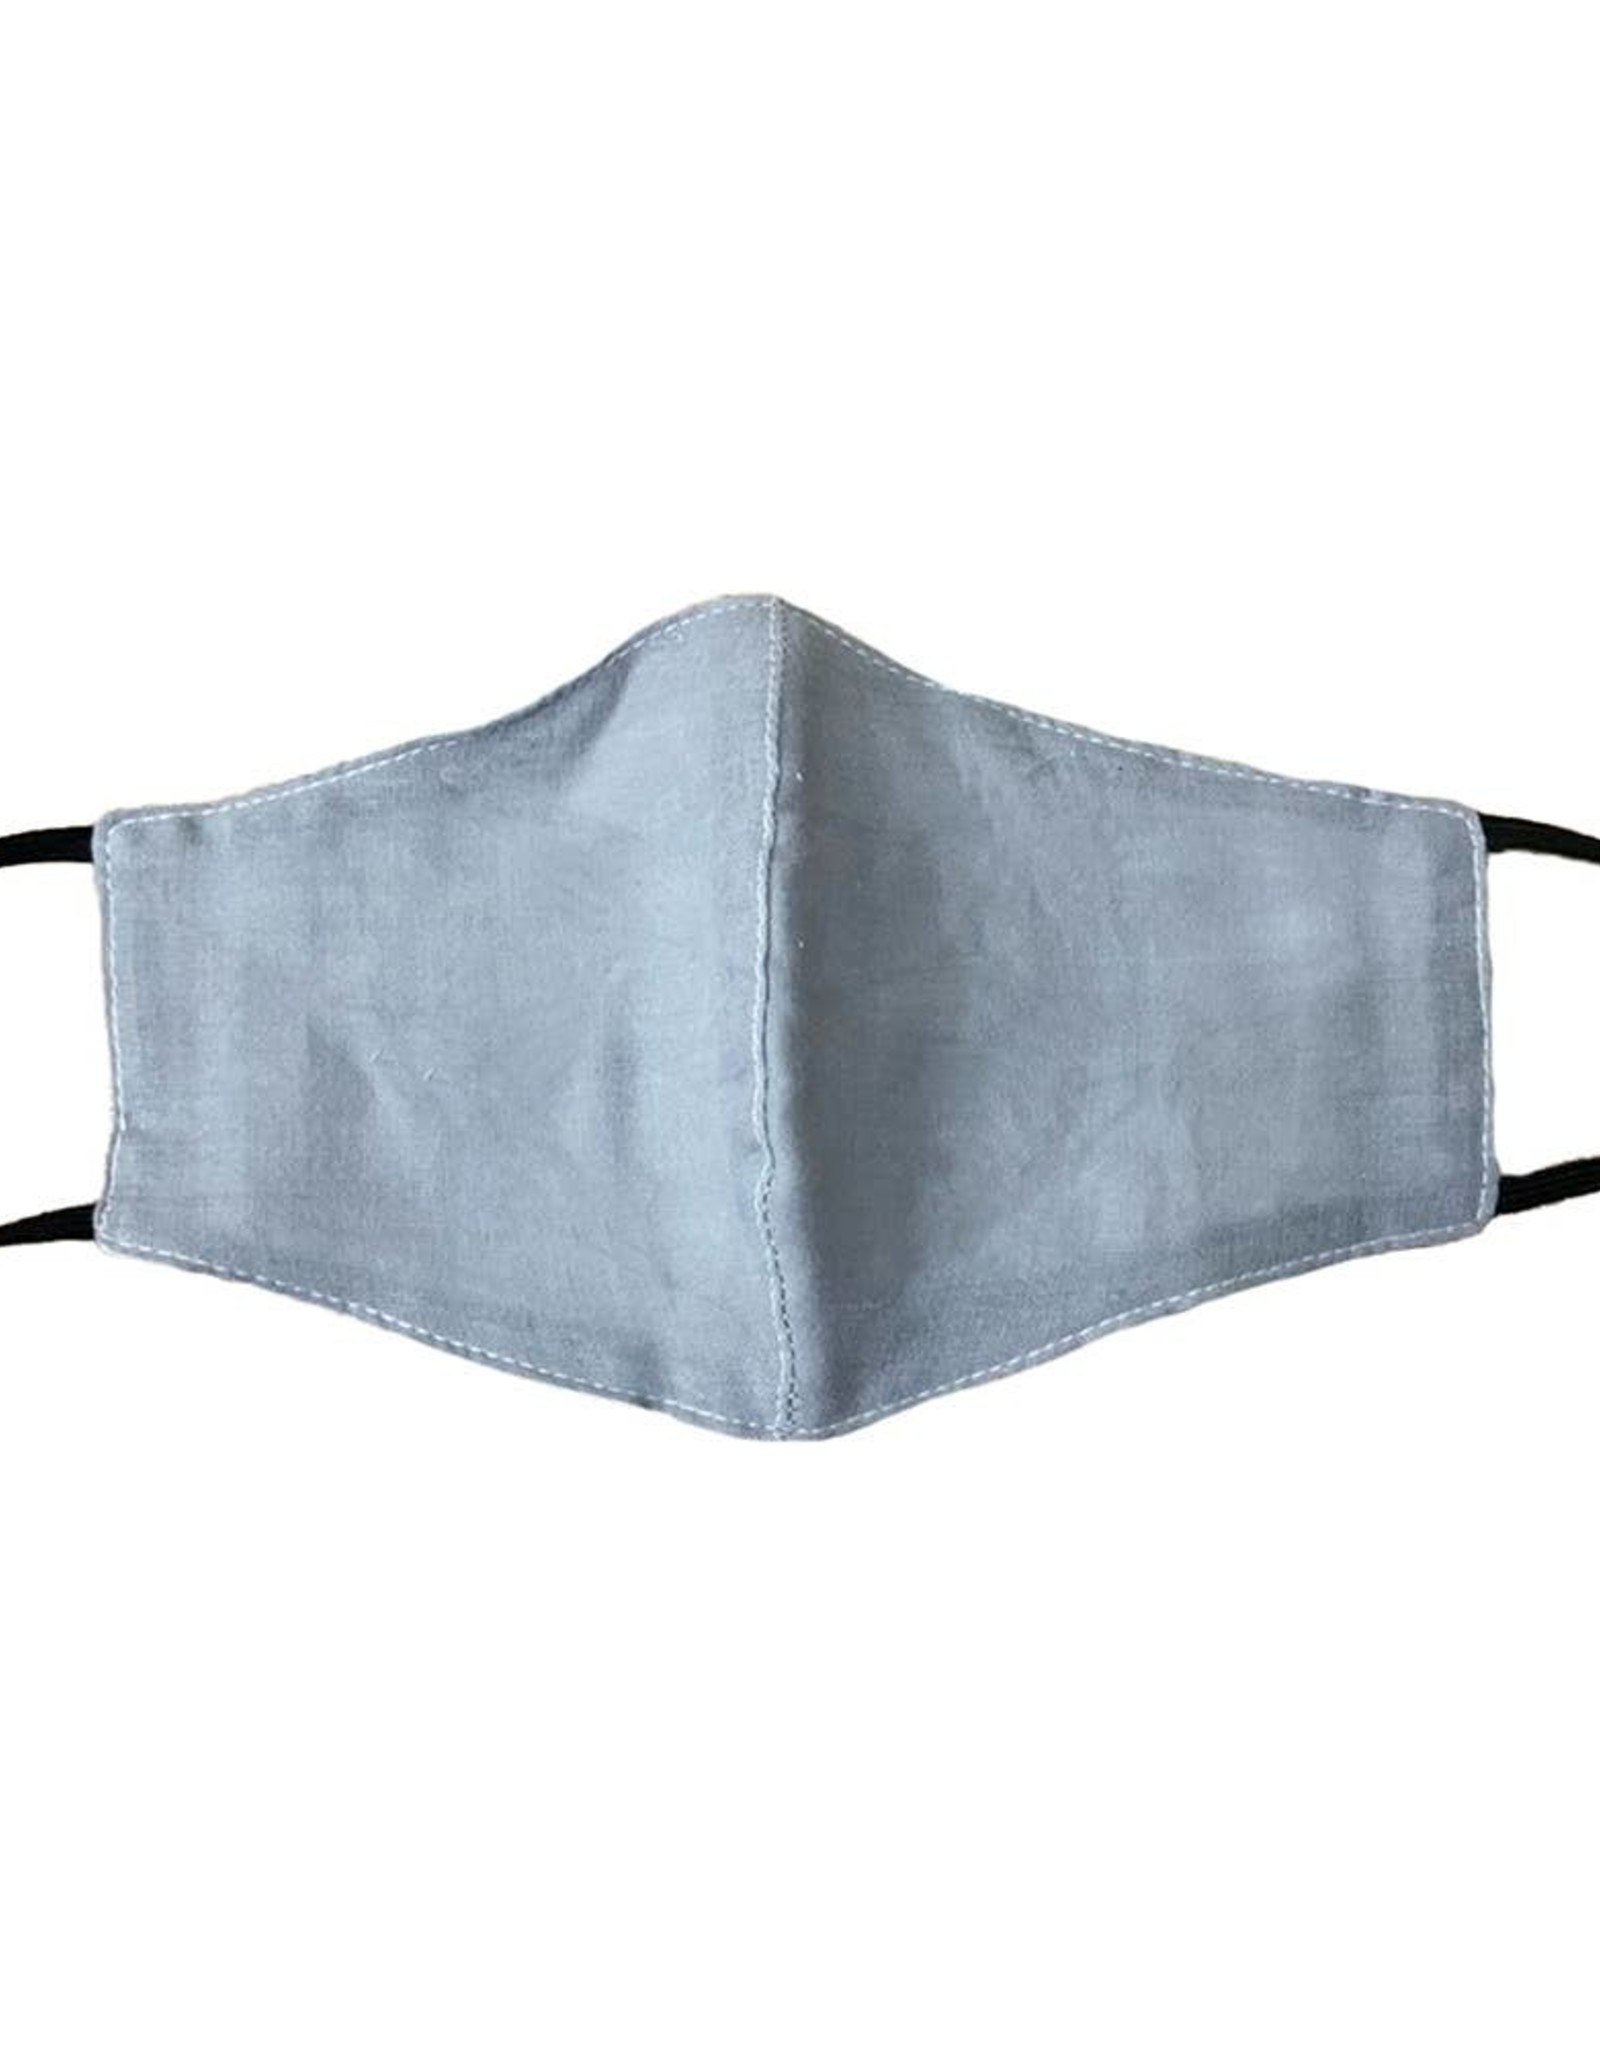 Lotus and Luna Lotus and Luna - Grey Cotton Wide Face Mask W/ Filter Space